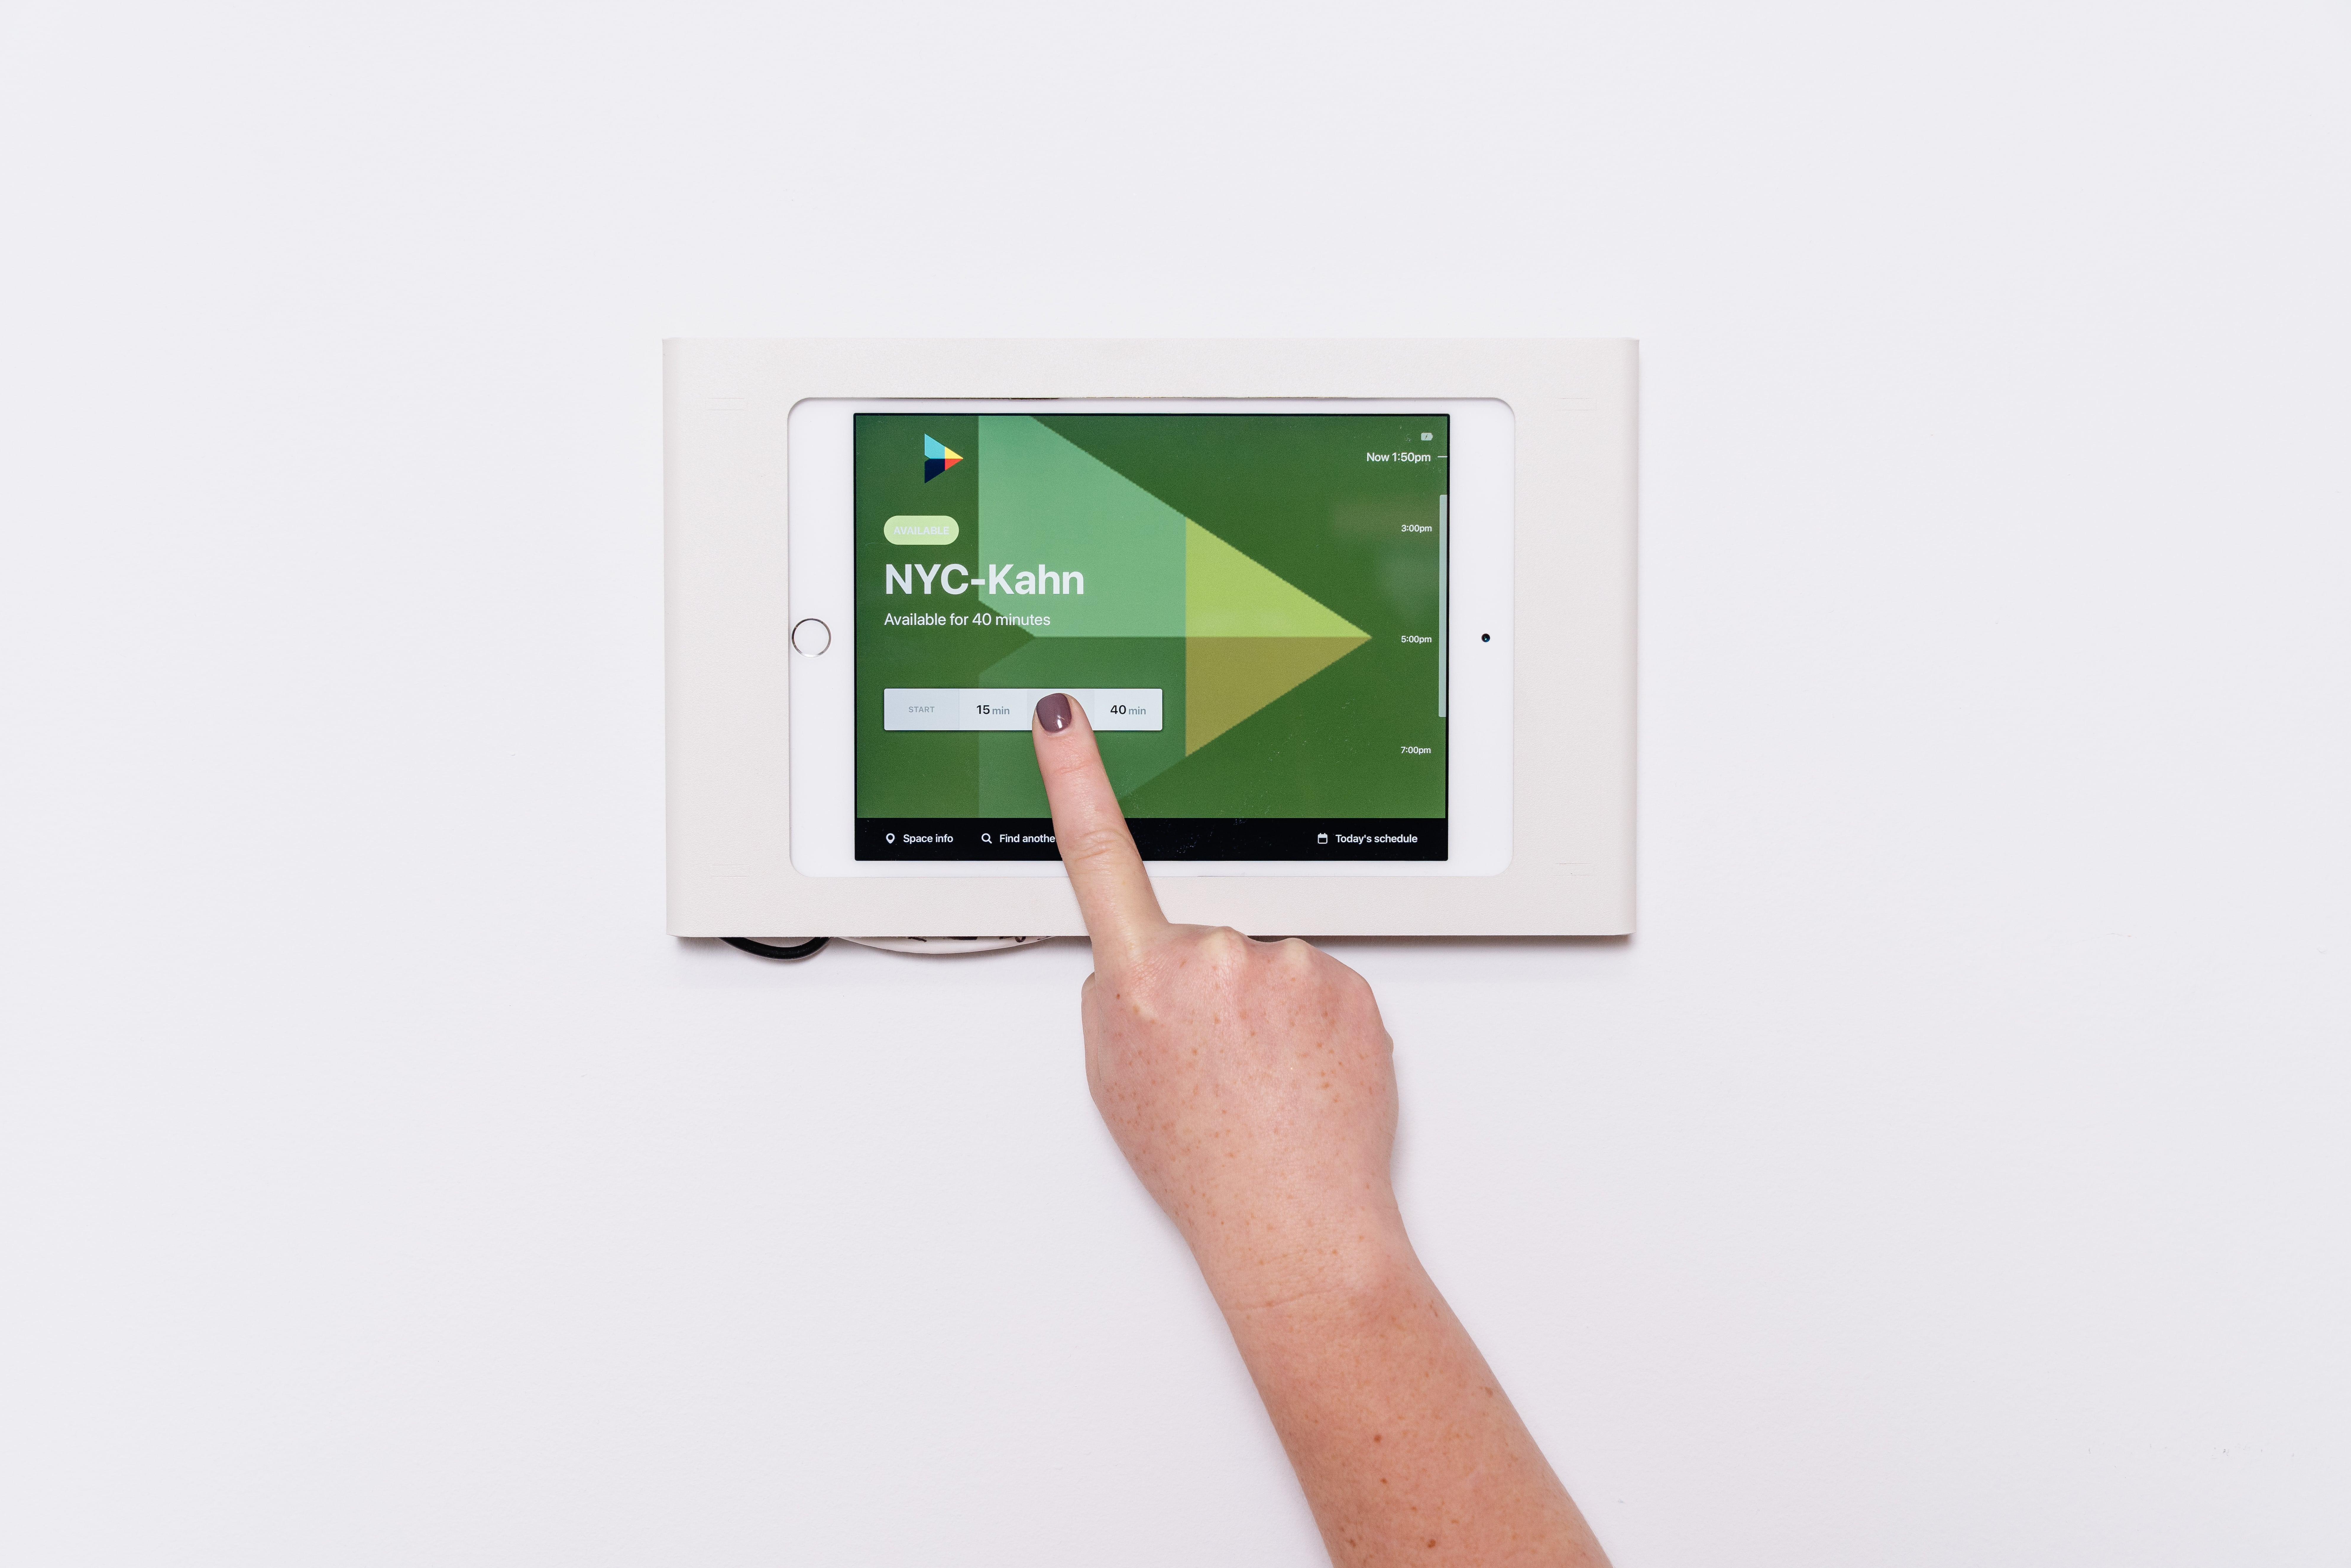 Office Ipad used for scheduling conference calls